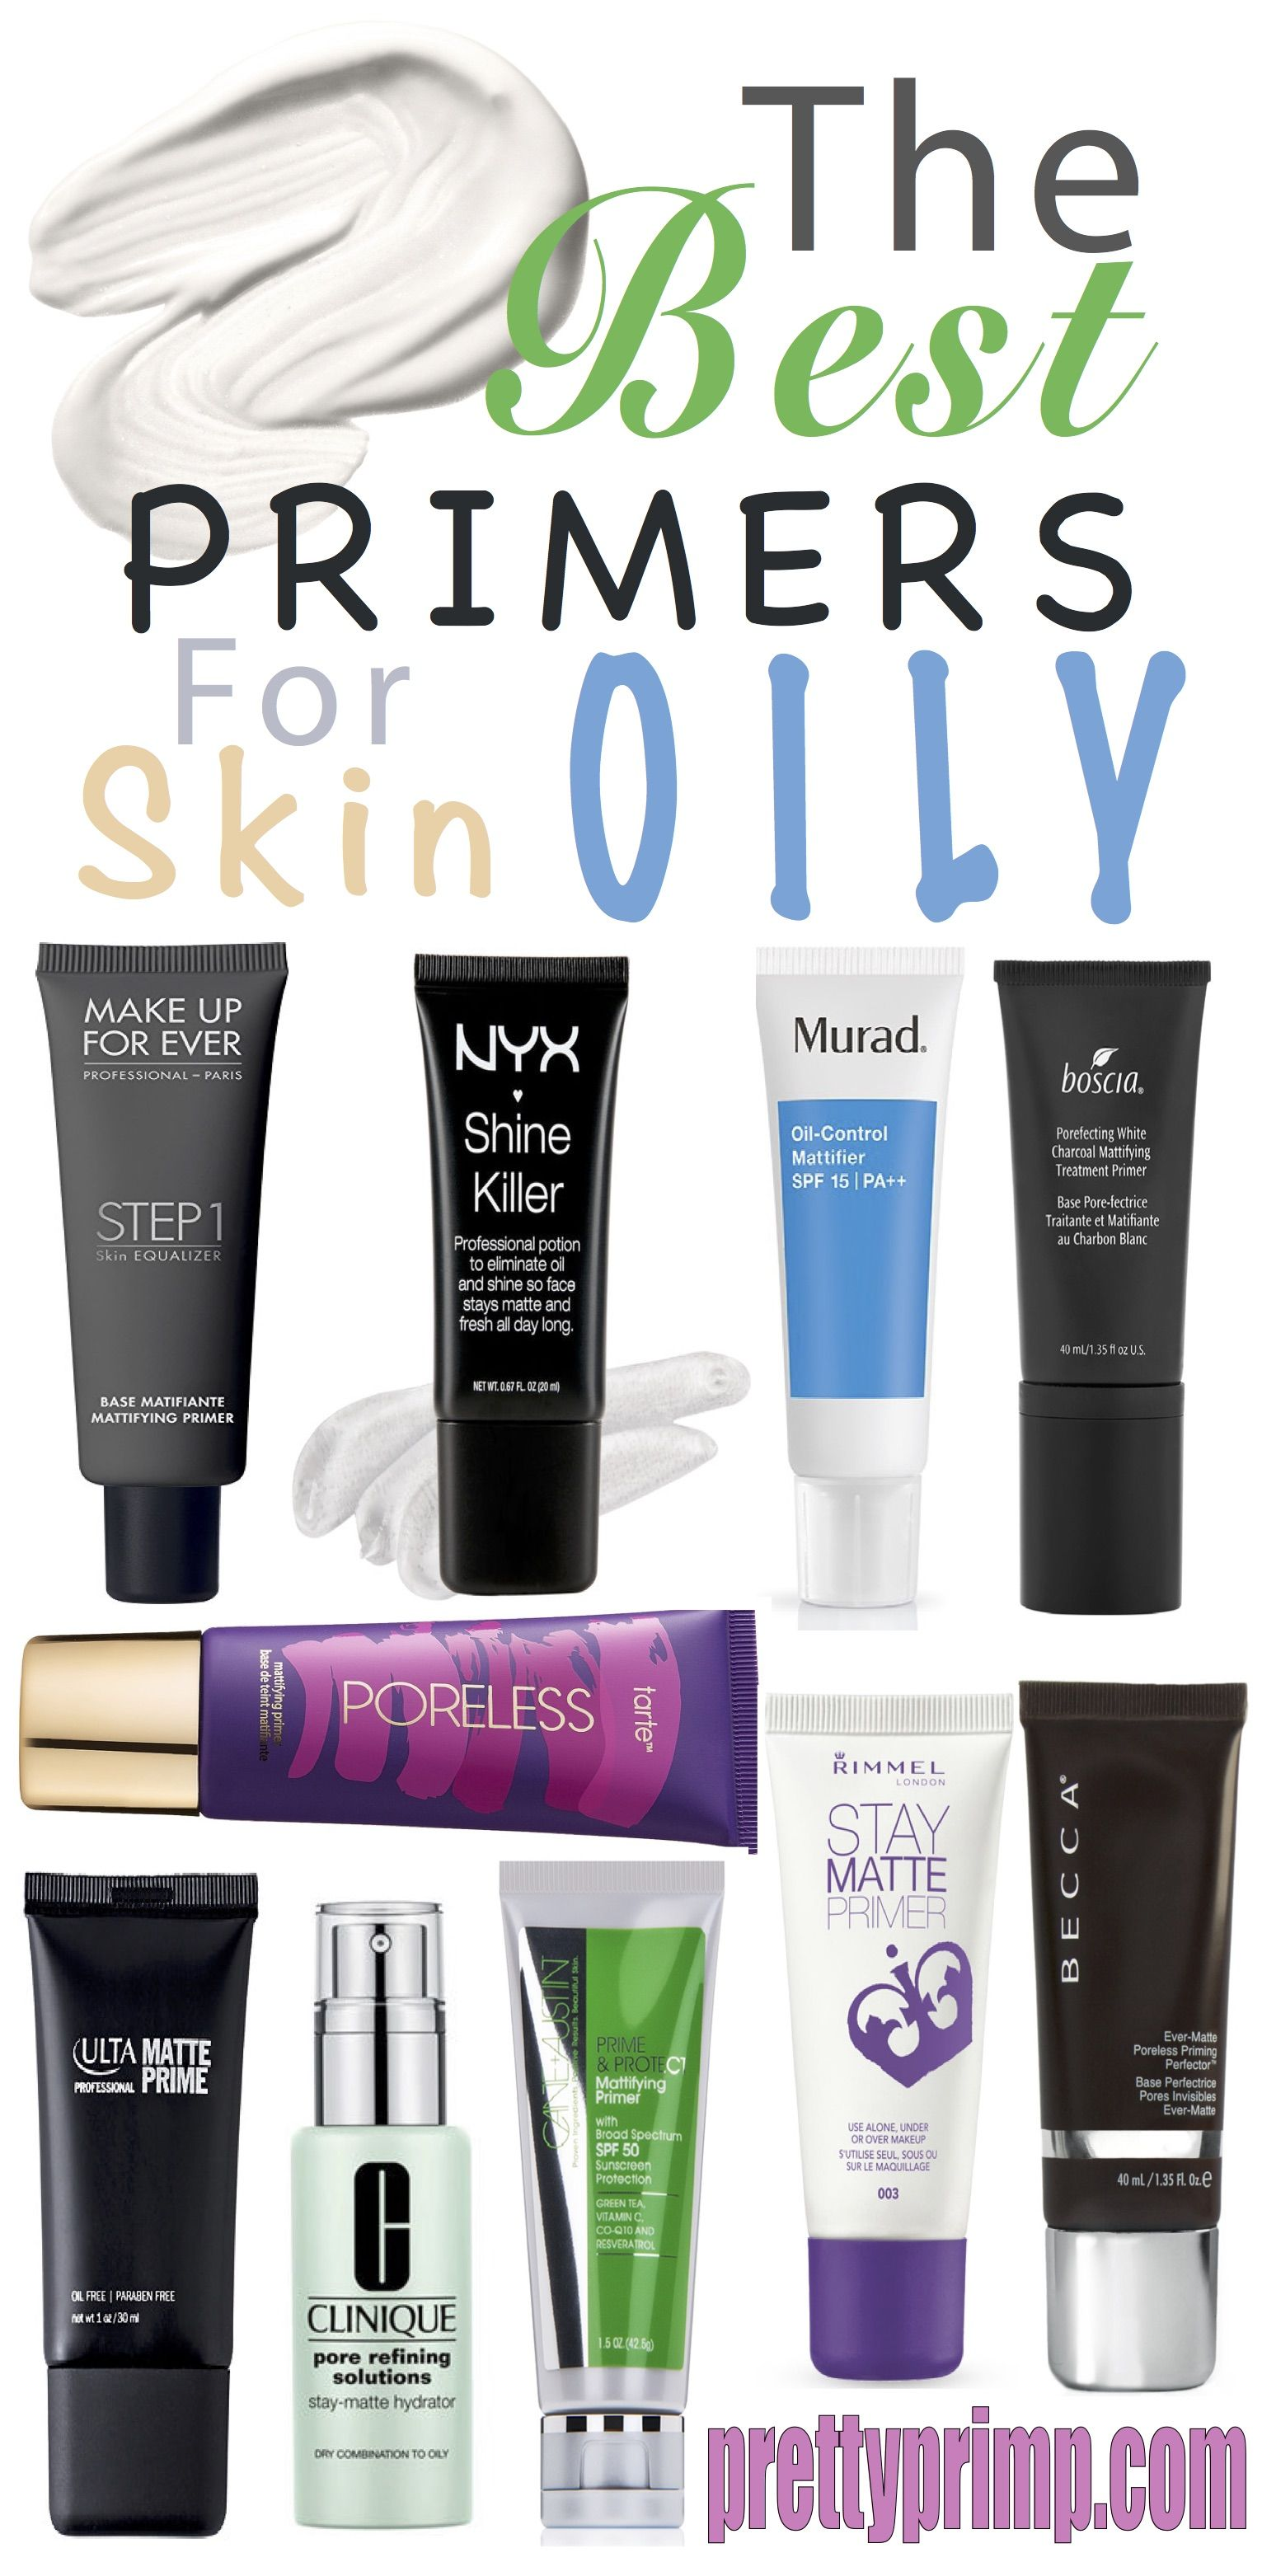 10 Best Primers For Oily Skin That Put An End To Shine Primer For Oily Skin Best Primer For Oily Skin Oily Skin Care